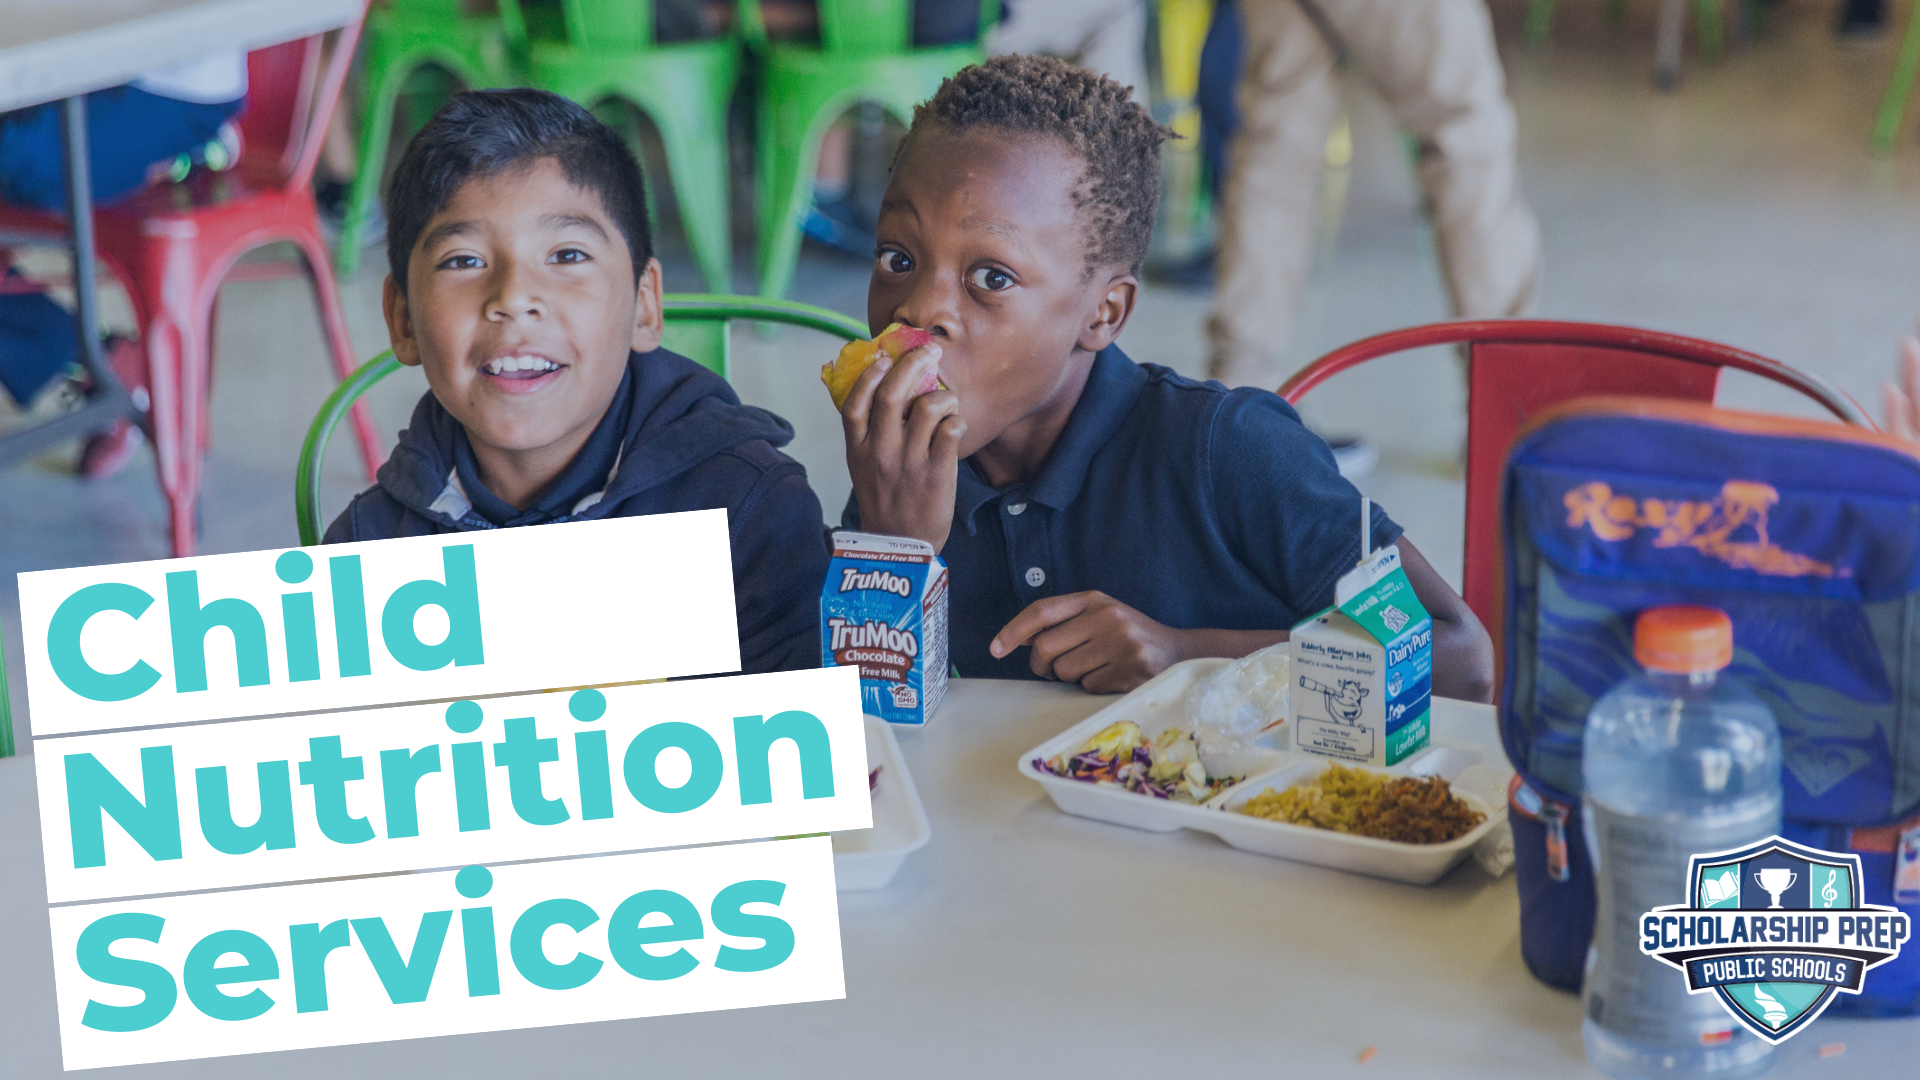 Child Nutrition Services Information